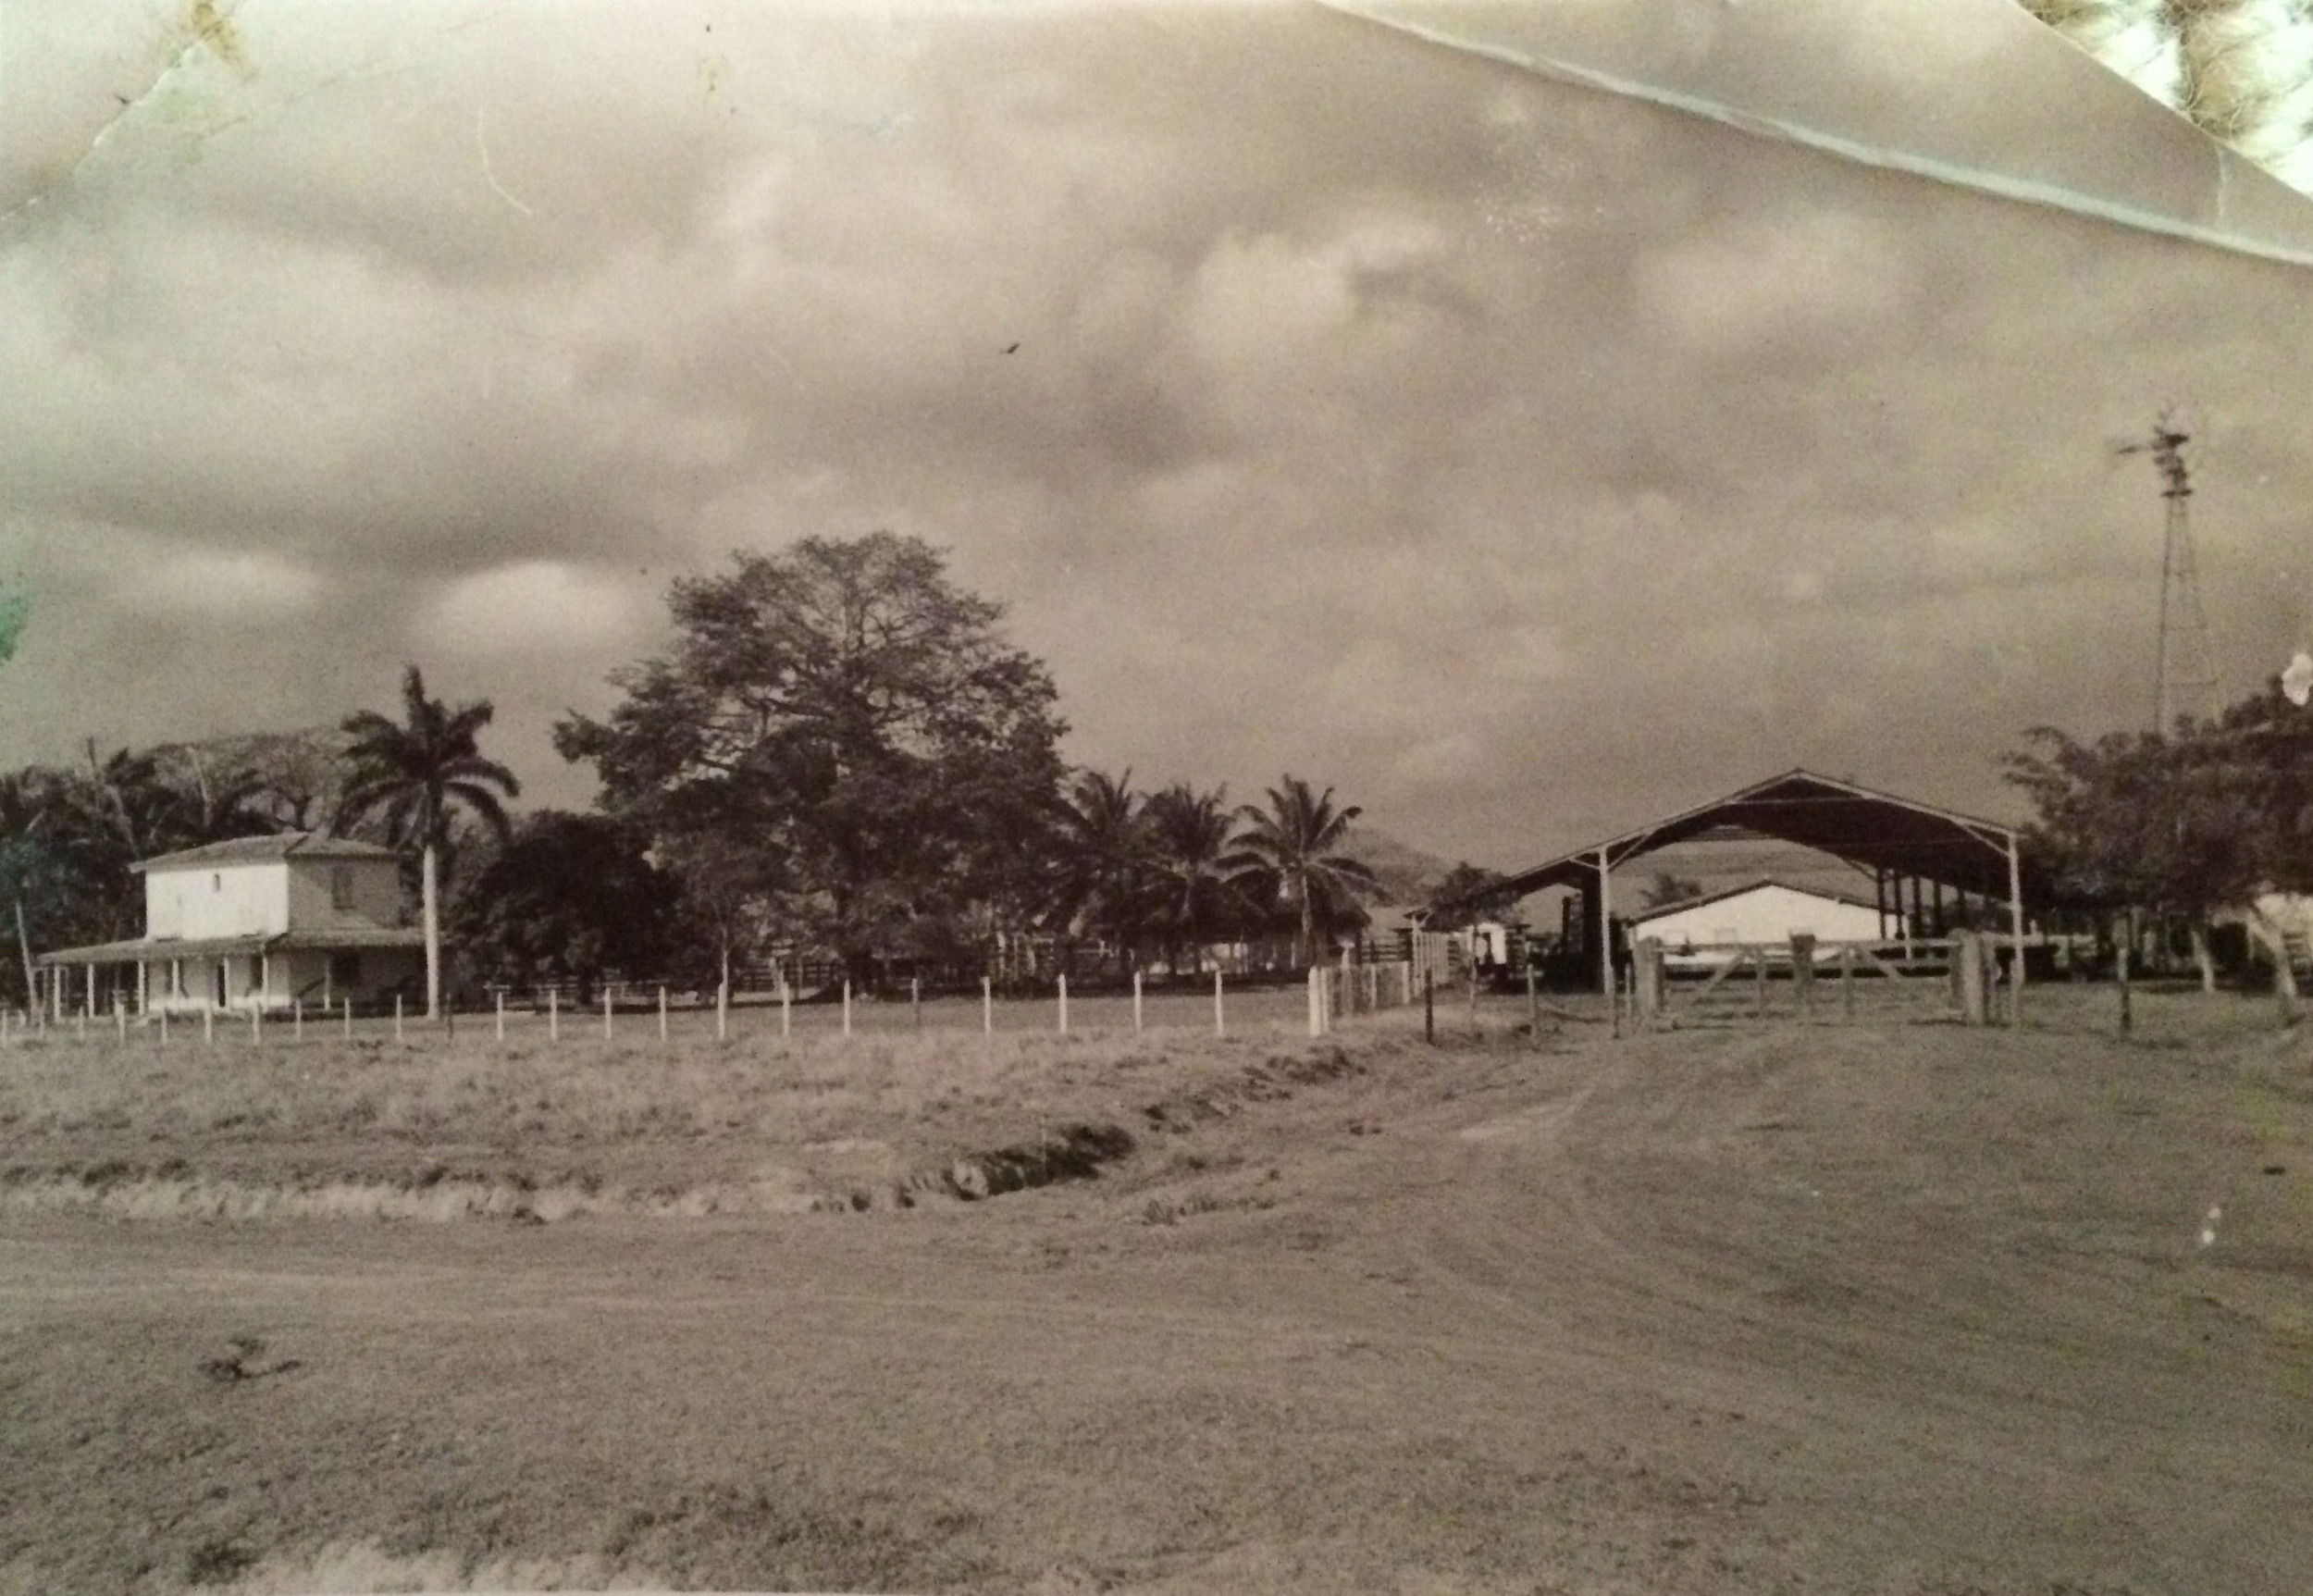 Photo provided by my grandmother of the house where my grandfather grew up and his cattle ranch